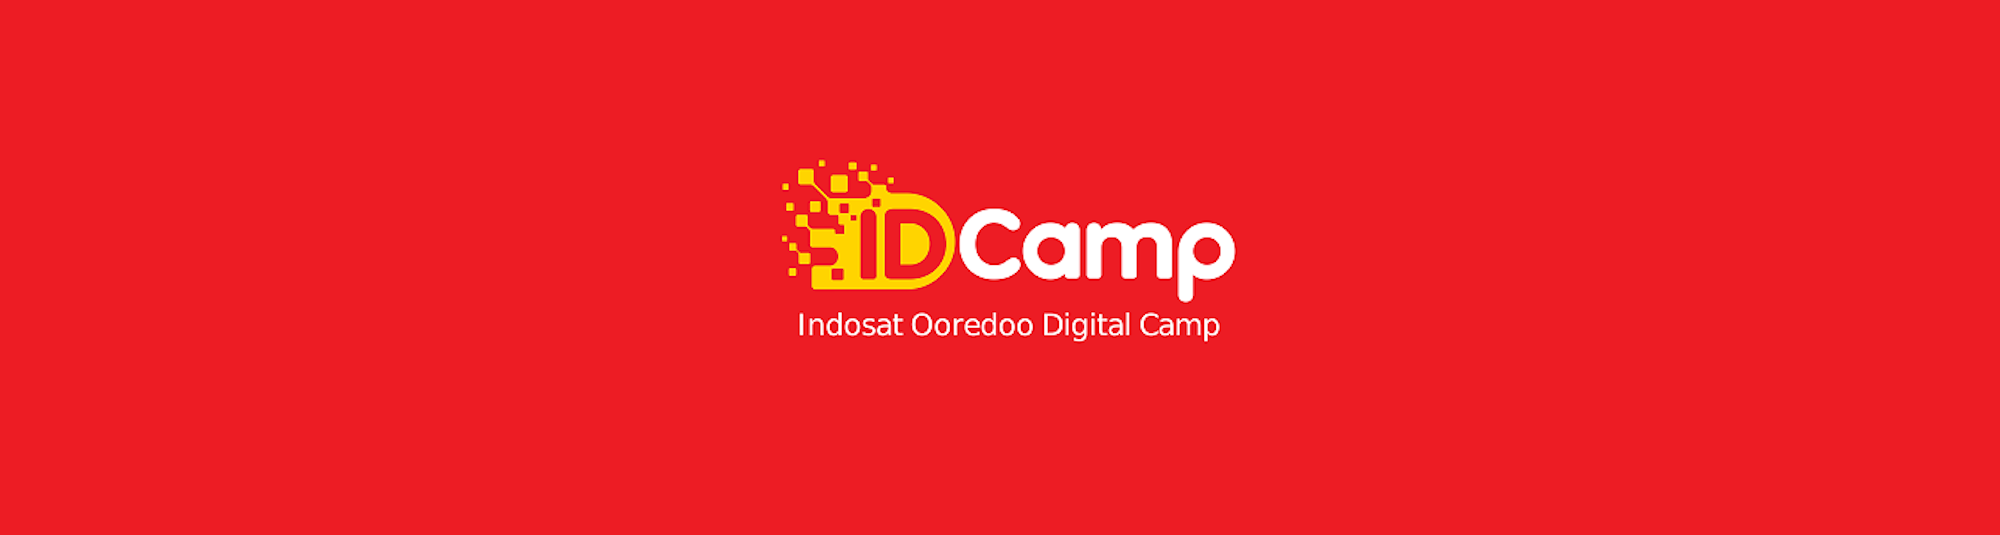 Indosat Ooredoo Digital Camp (IDCamp) Developers Meetup - Banjarmasin